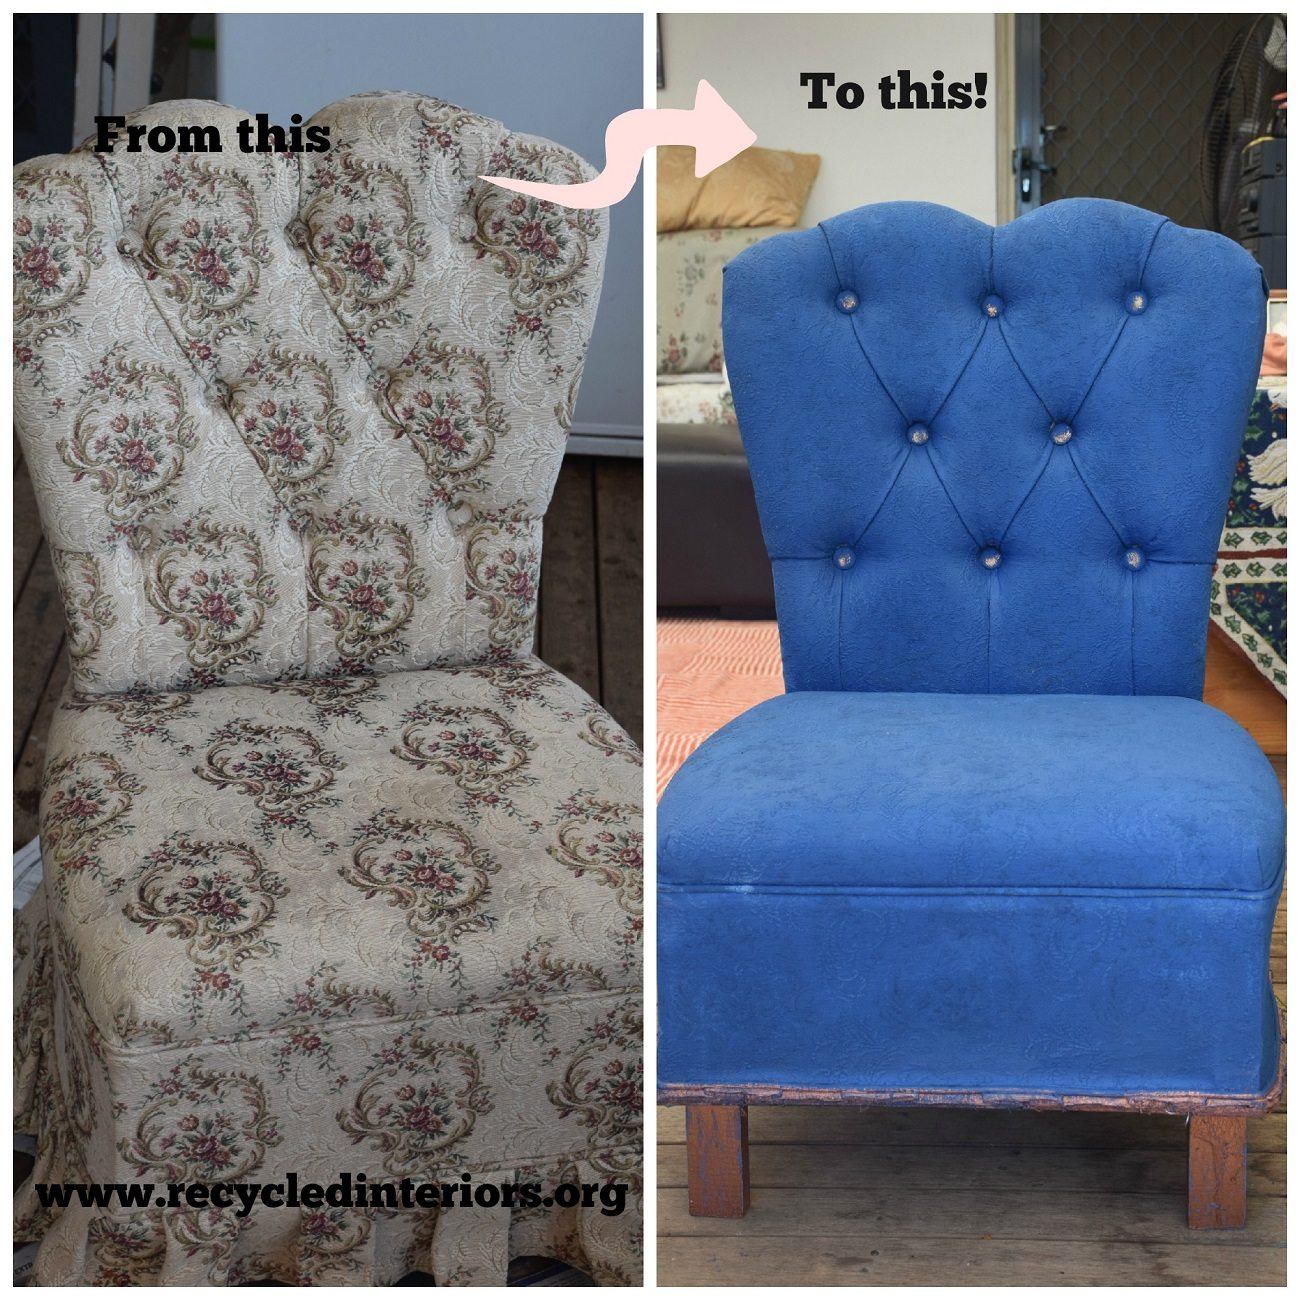 painting an upholstered chair with annie sloan chalk paint recycled interiors. Black Bedroom Furniture Sets. Home Design Ideas